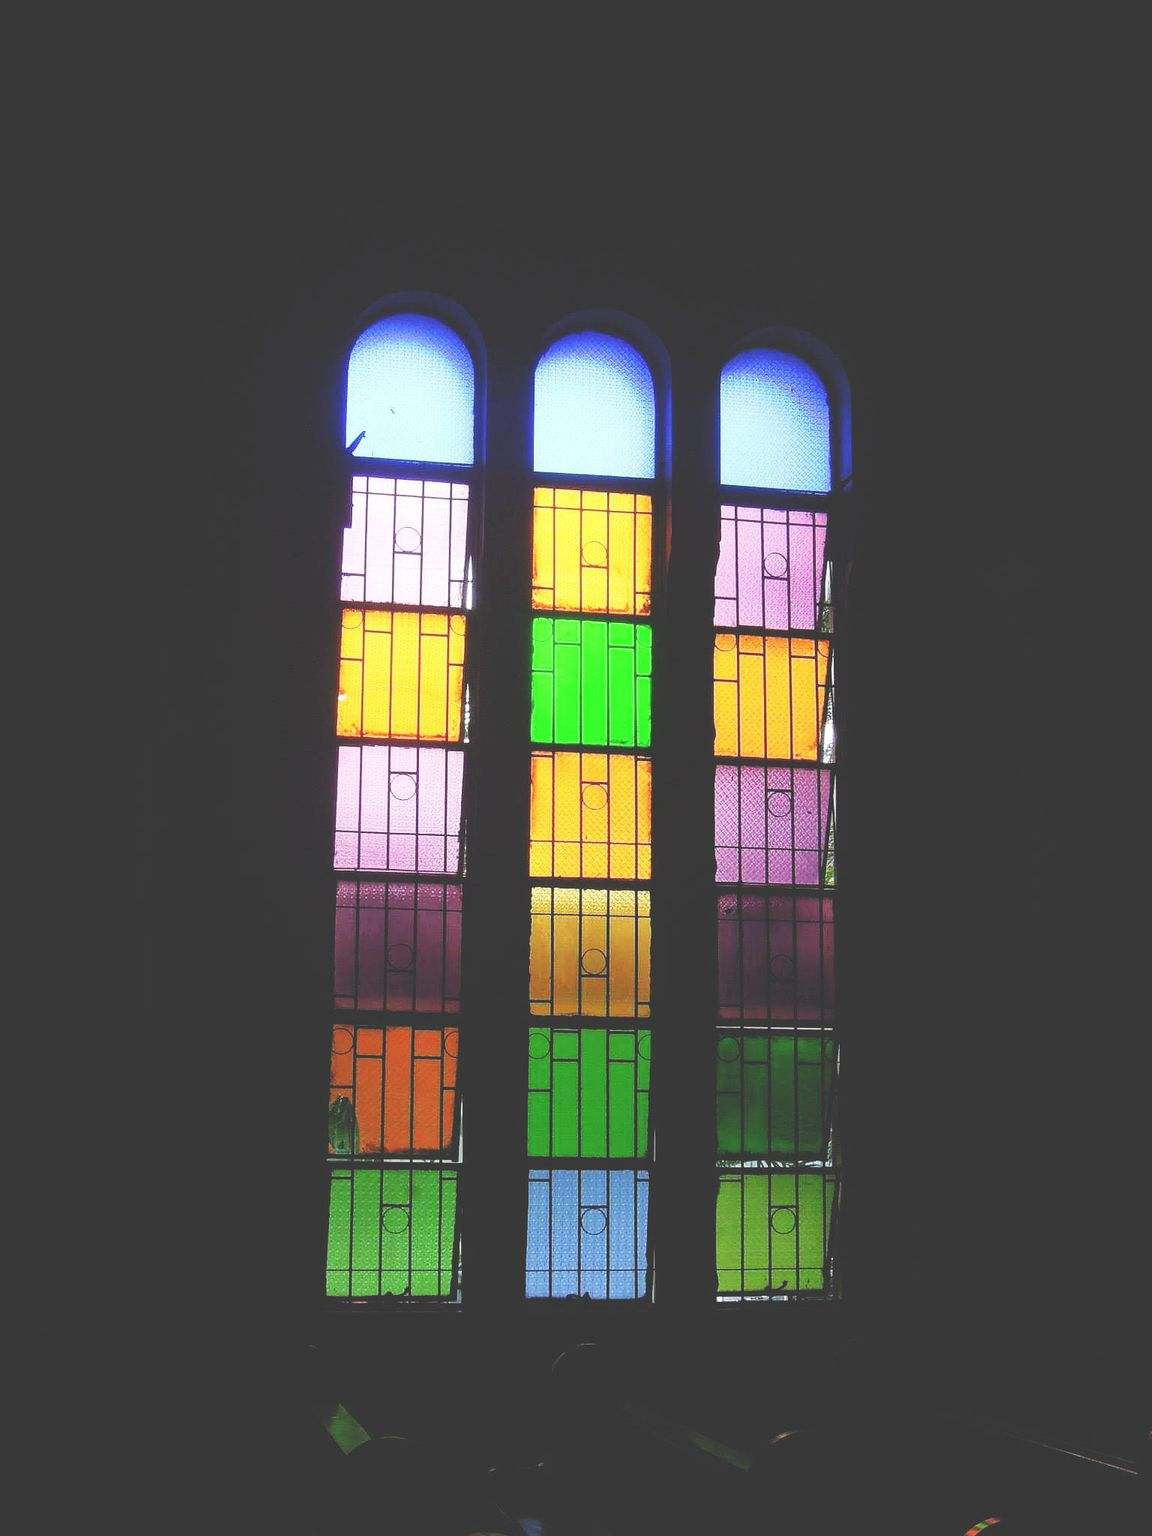 Stained glass window of a church